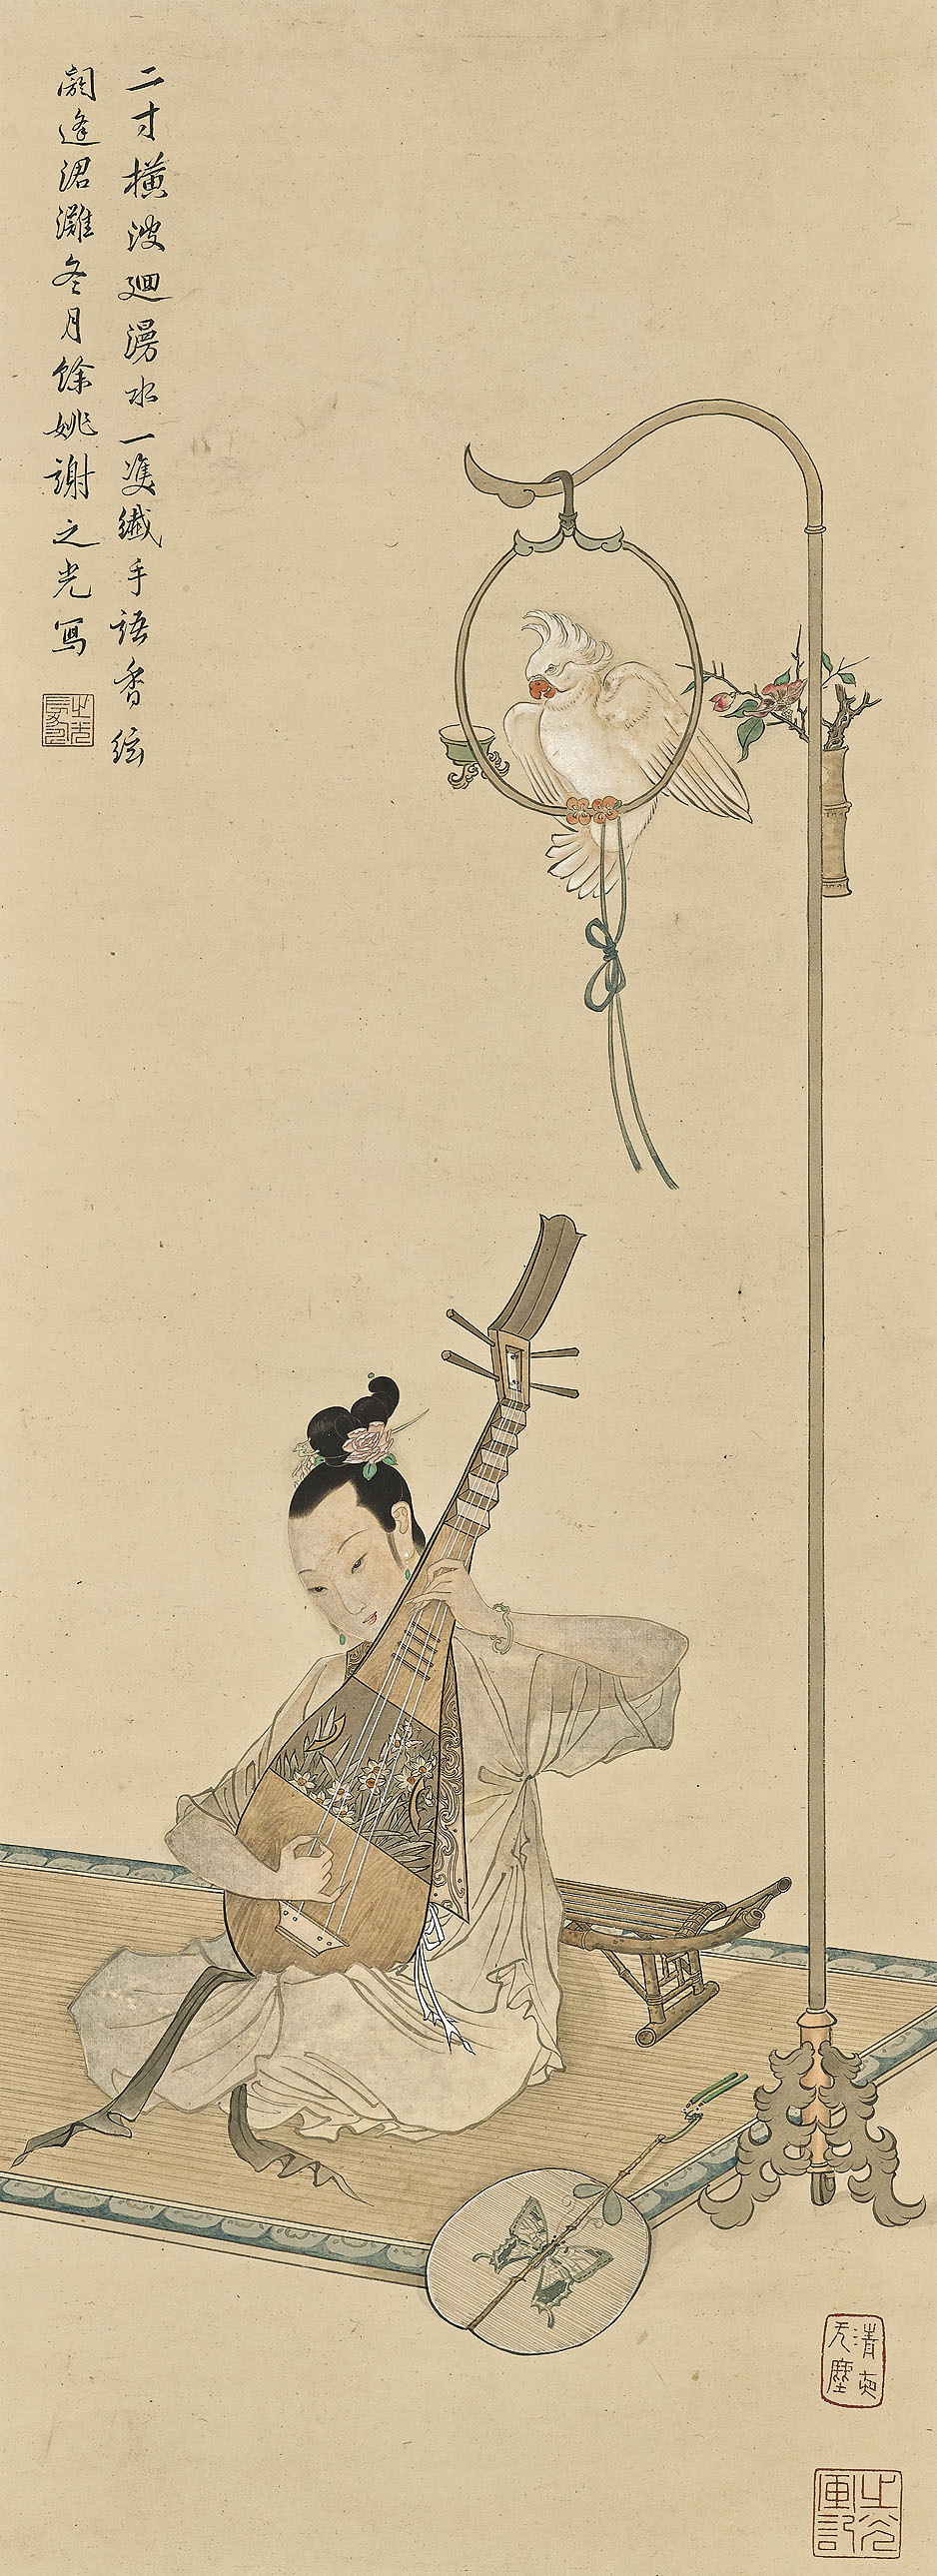 Lady Playing Qin